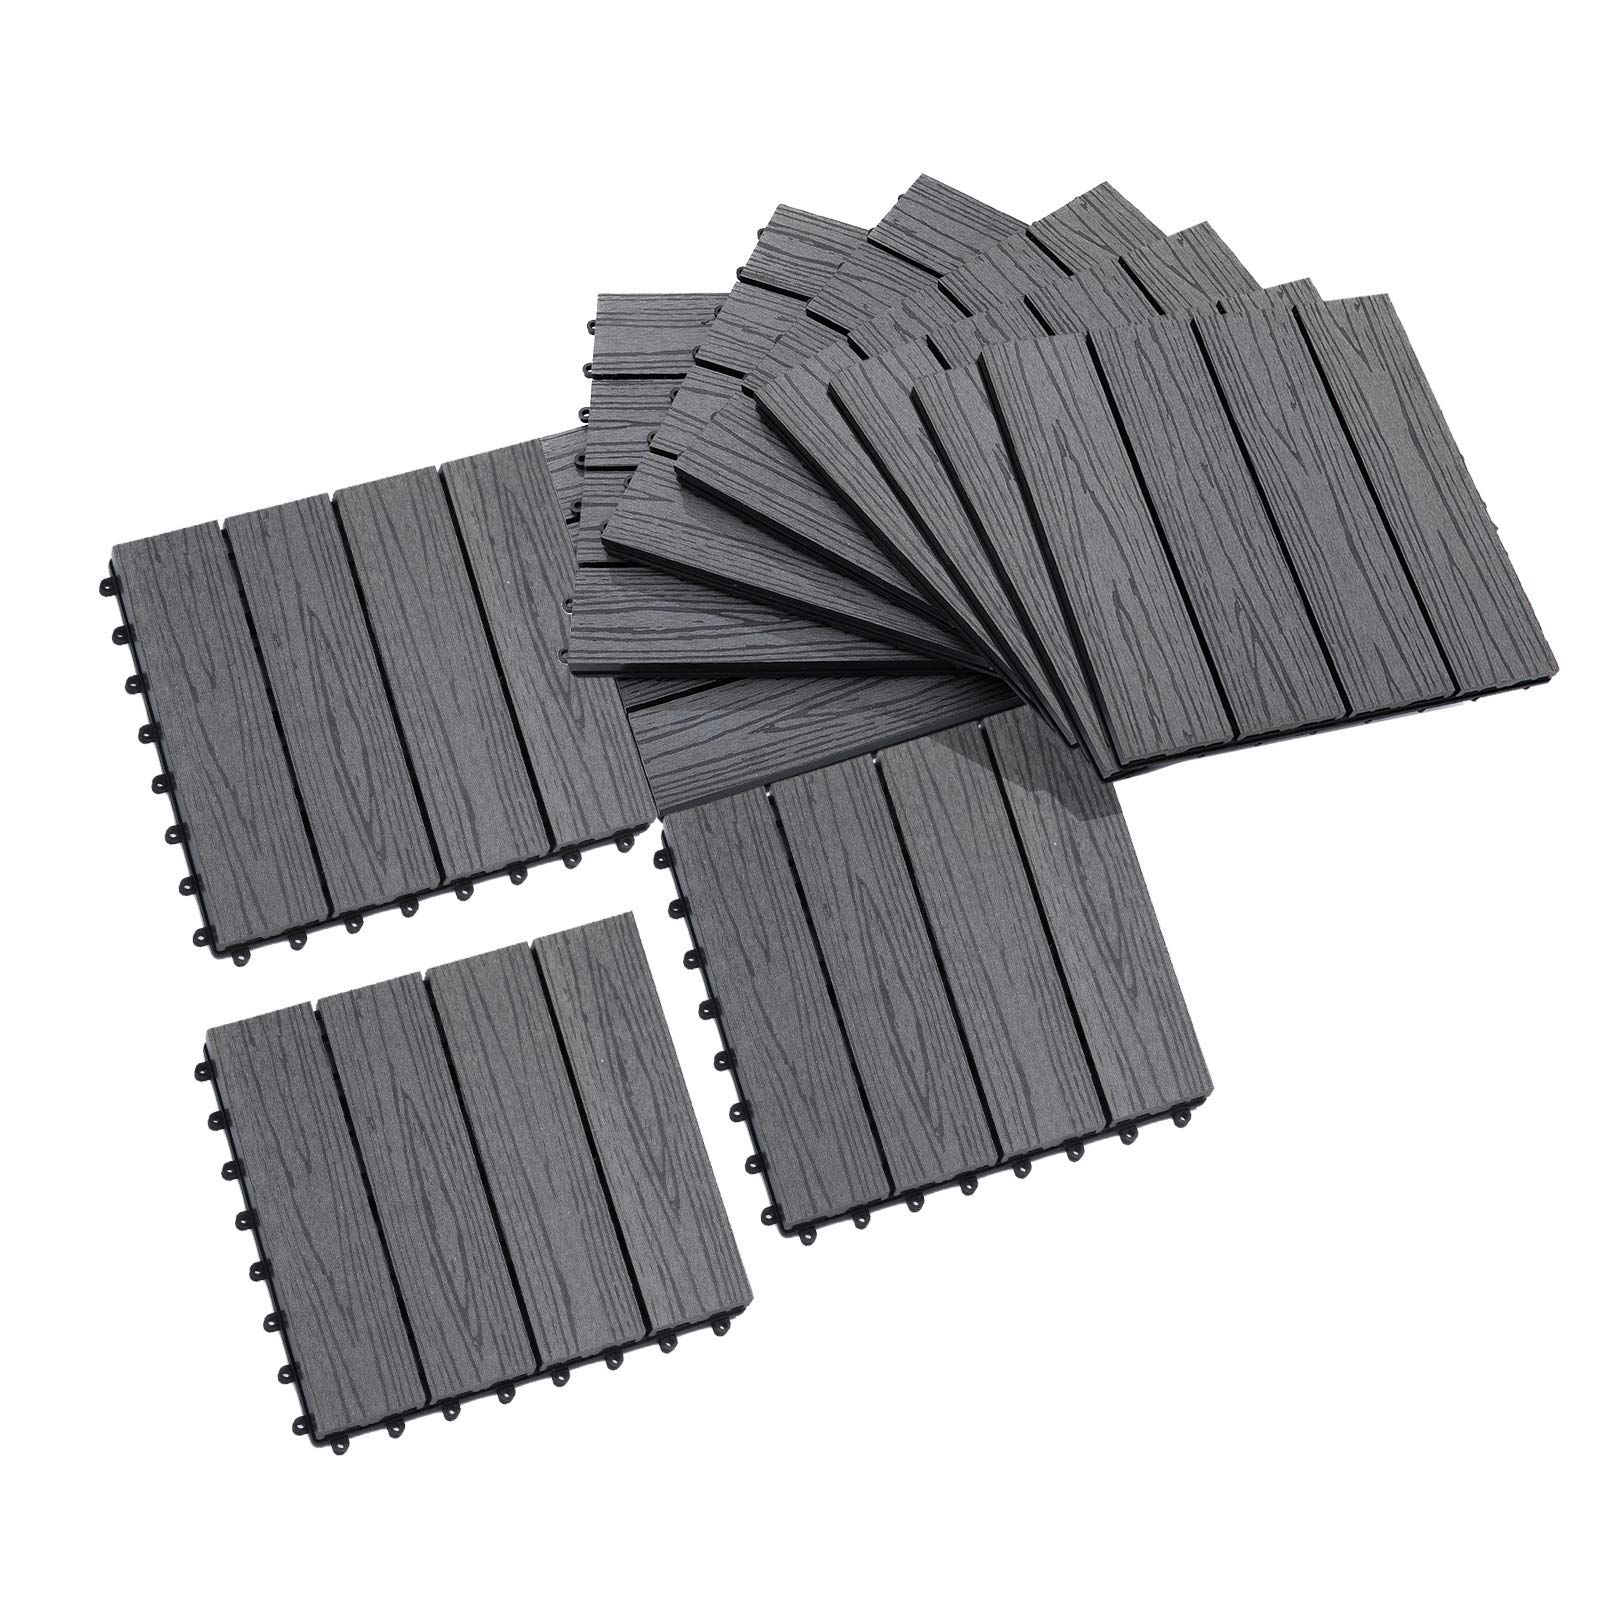 Outsunny 1' x 1' HDPE Interlocking Composite Deck Tile 10 Pack -Grey